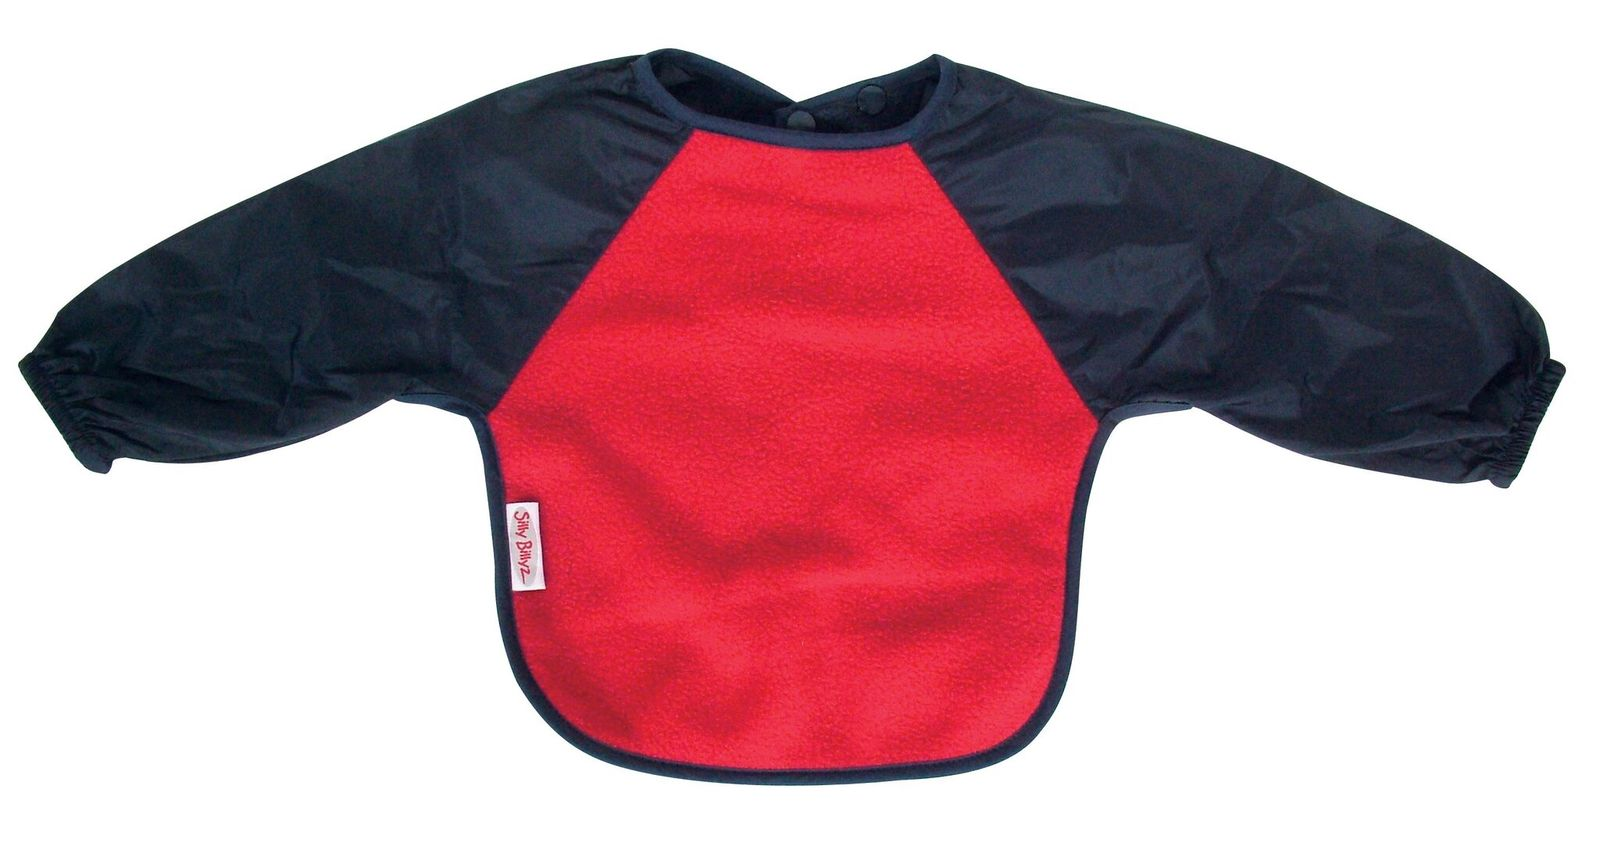 Silly Billyz Fleece Long Sleeve Baby Bib - Small (Red/Navy) image